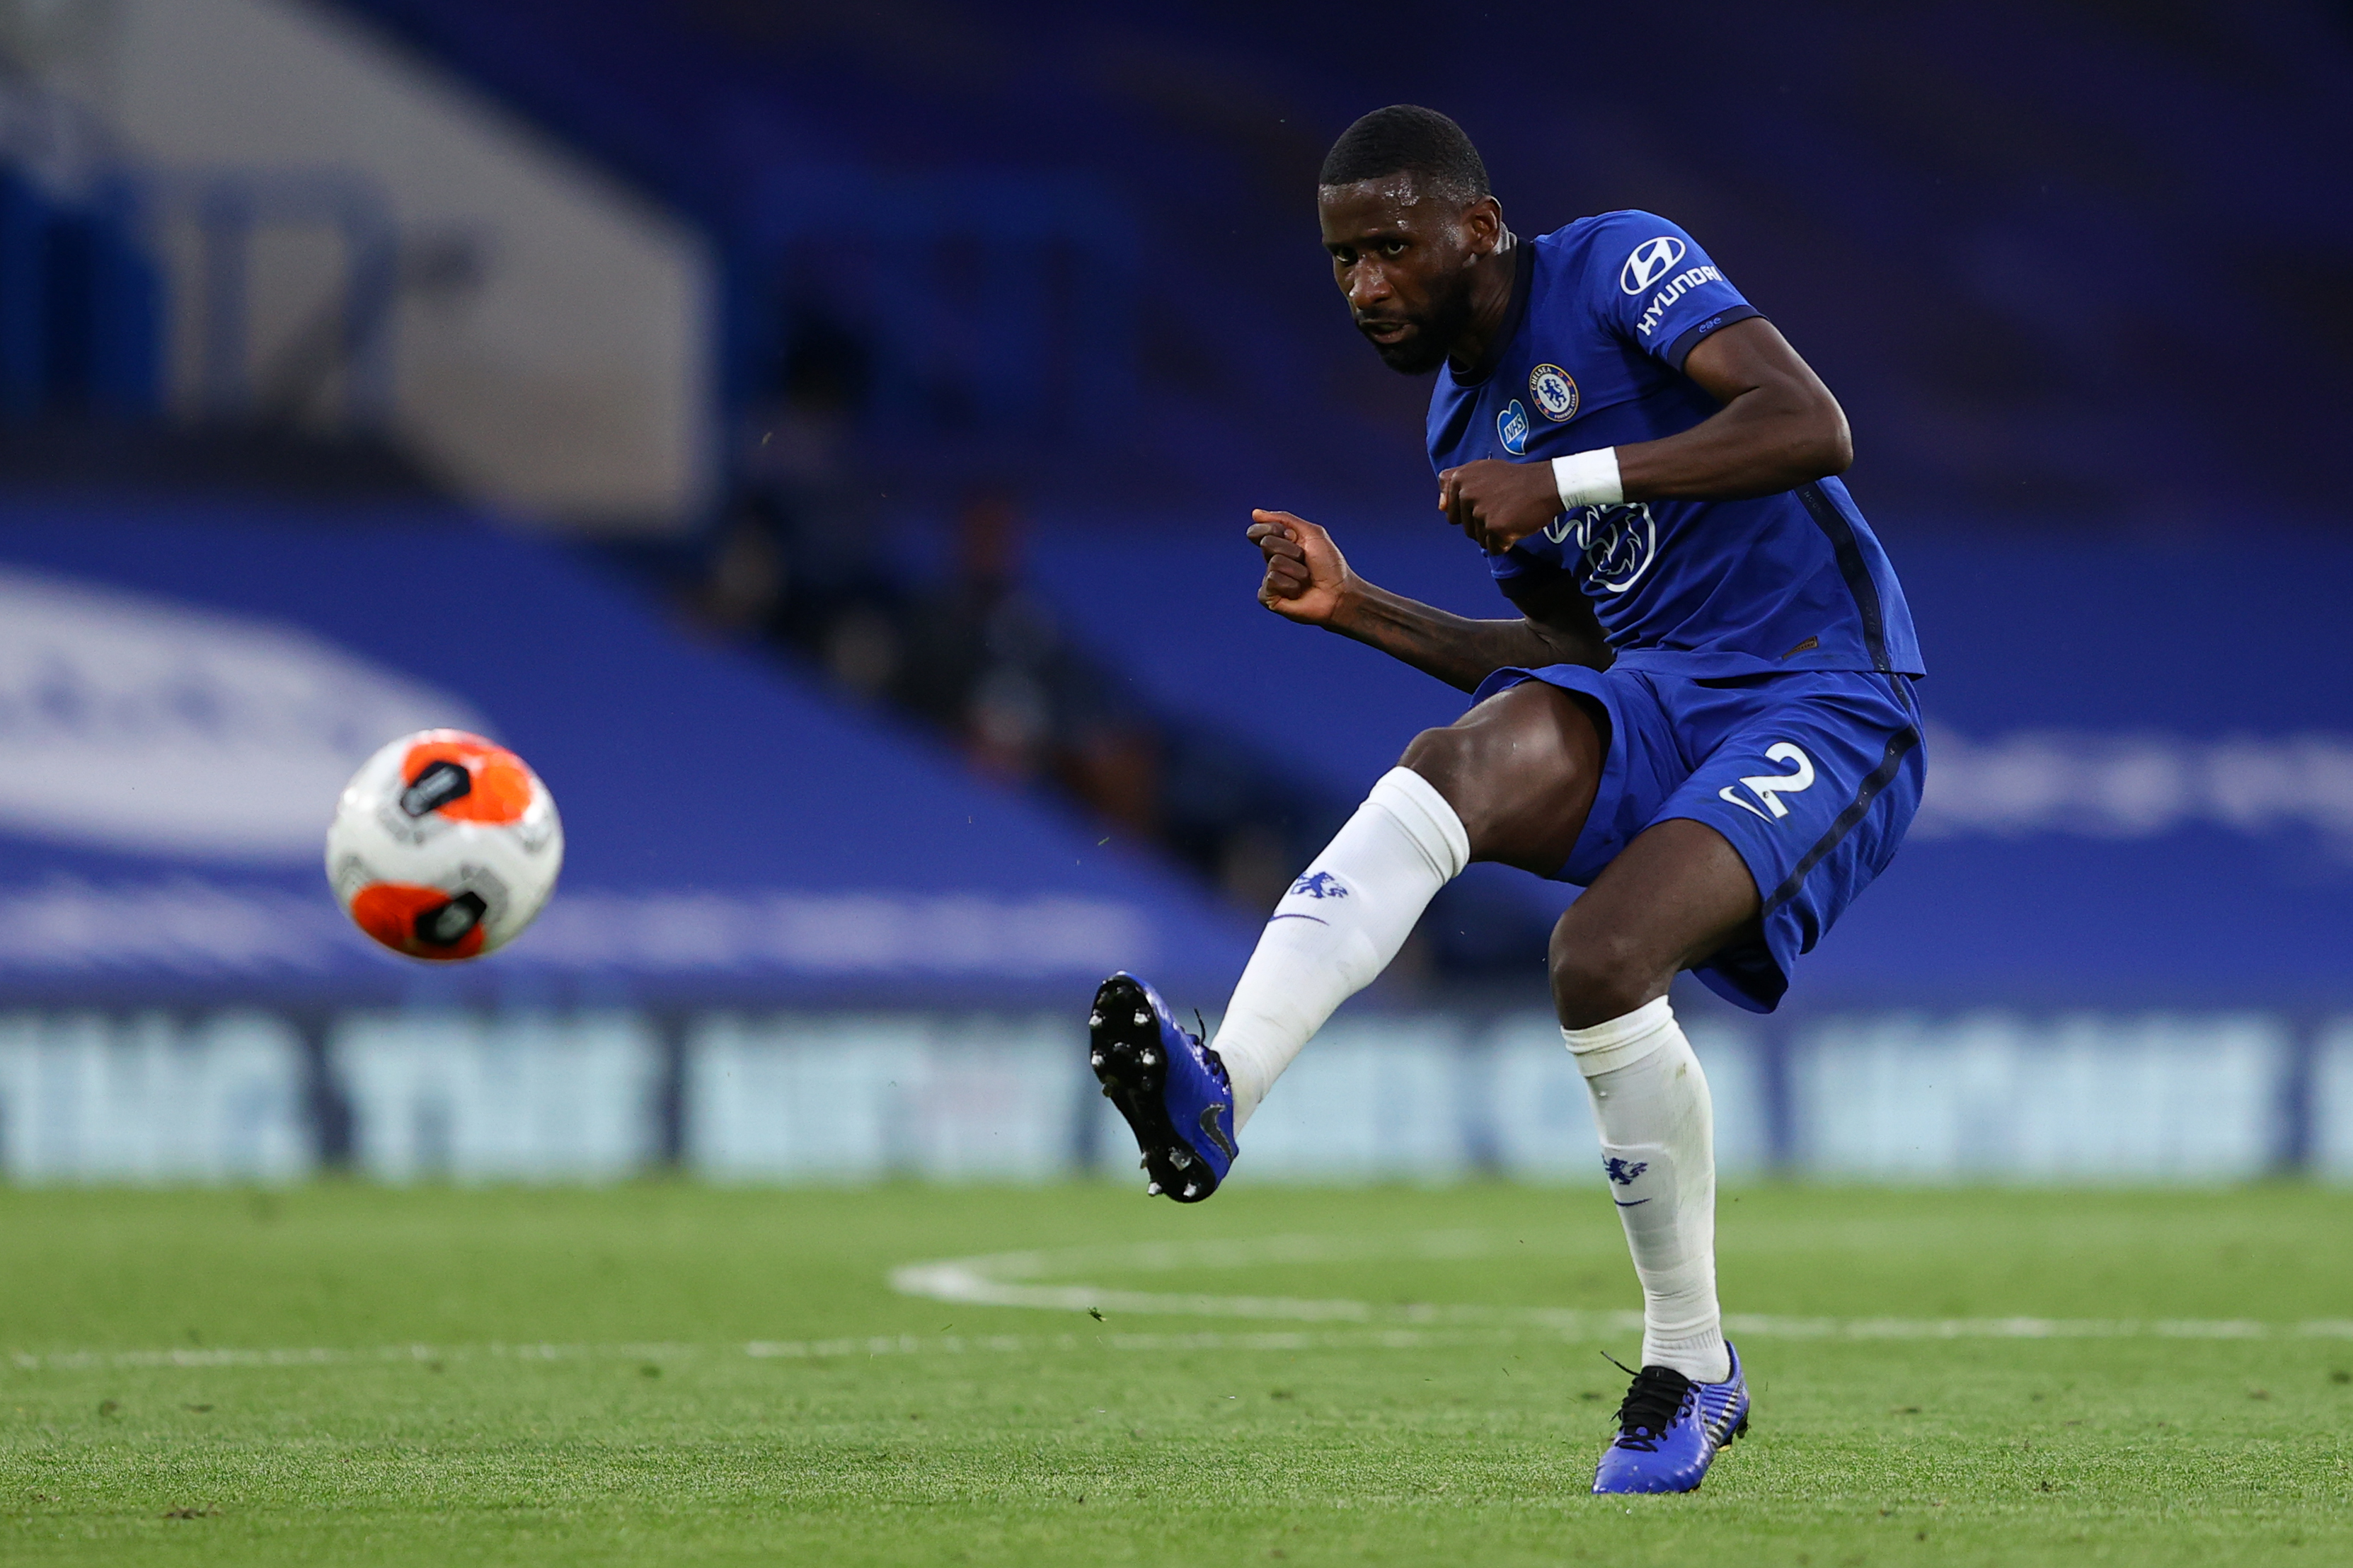 'I used to play in a front three!' - Chelsea defender Rudiger reveals he was originally a winger alongside USMNT star Brooks